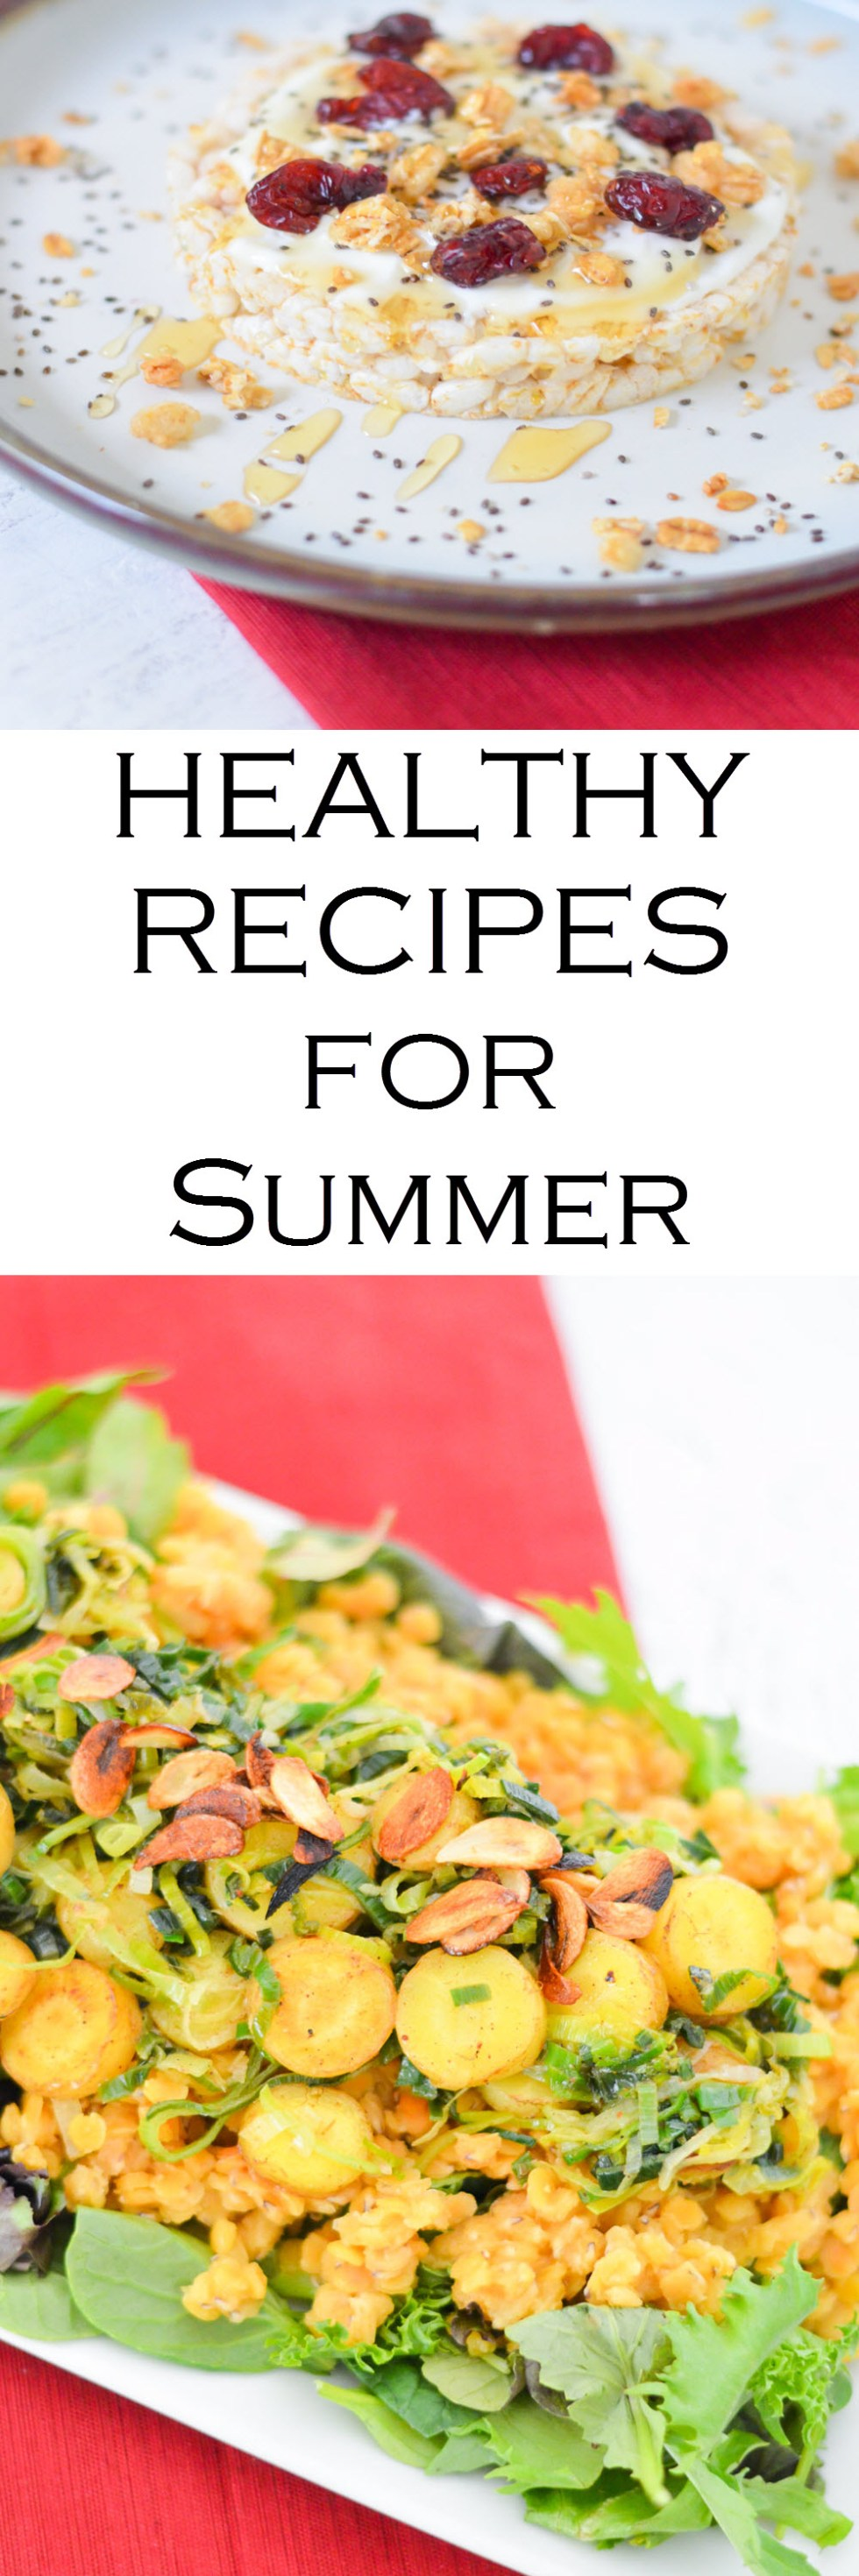 Healthy Recipes for Summer - salads, breakfast, snacks, and easy dinners!